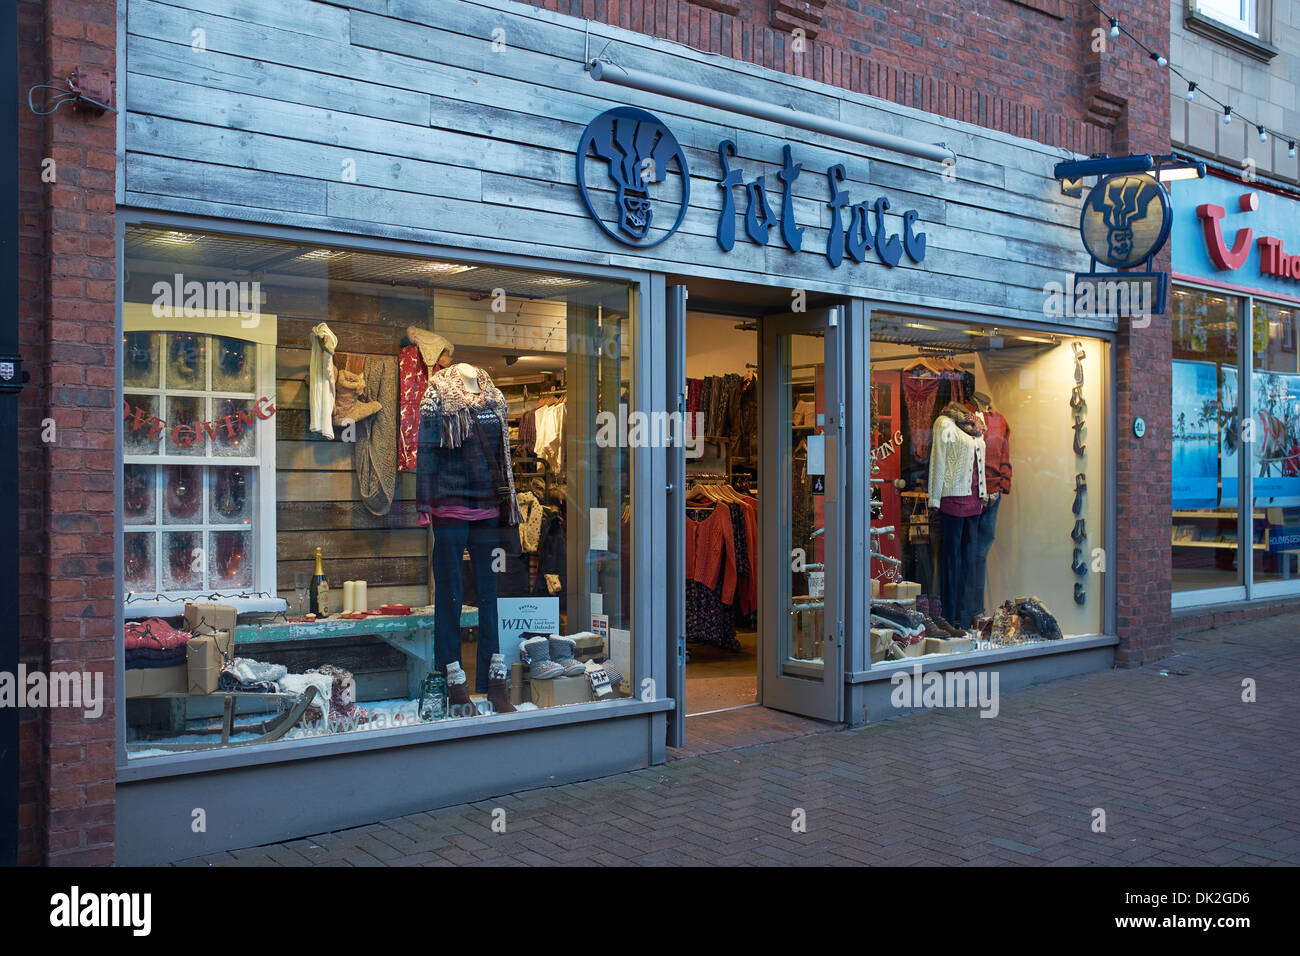 Fat Face shop front in Carlisle city centre UK - Stock Image